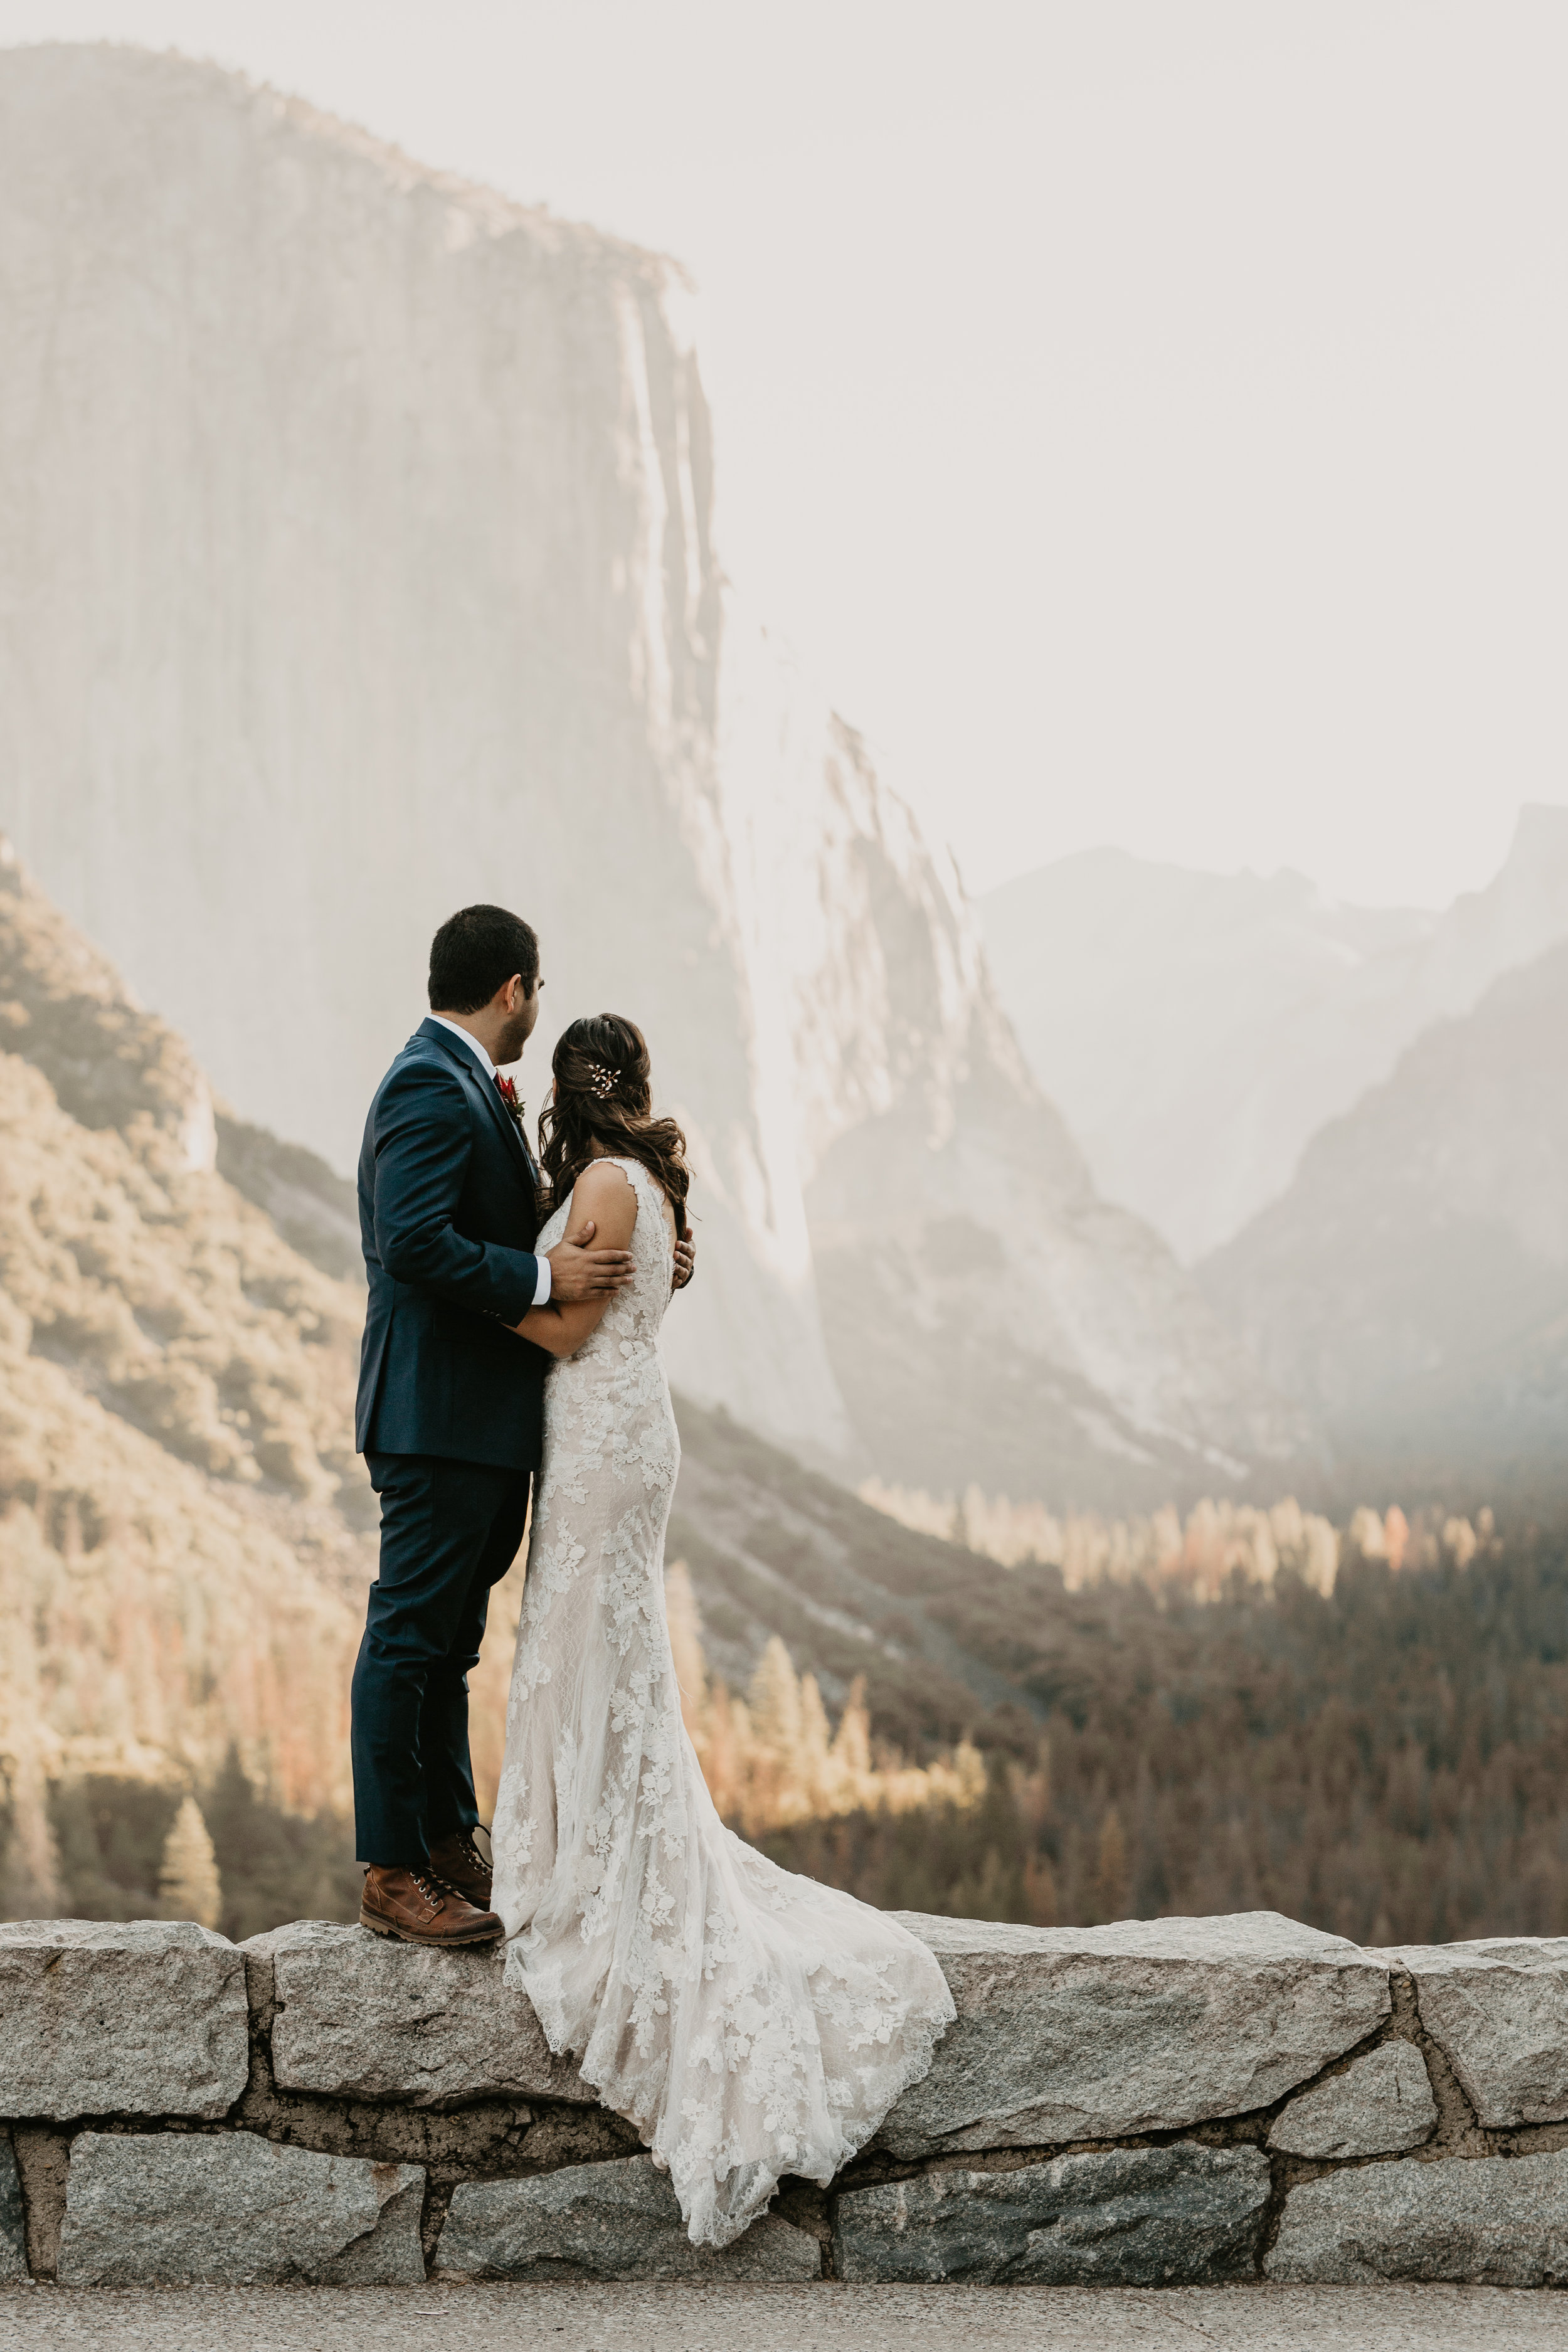 nicole-daacke-photography-intimate-elopement-wedding-yosemite-national-park-california-taft-point-sunset-photos-yosemite-valley-tunnel-view-first-look-sunrise-golden-granite-hiking-adventure-wedding-adventurous-elopement-photographer-6.jpg